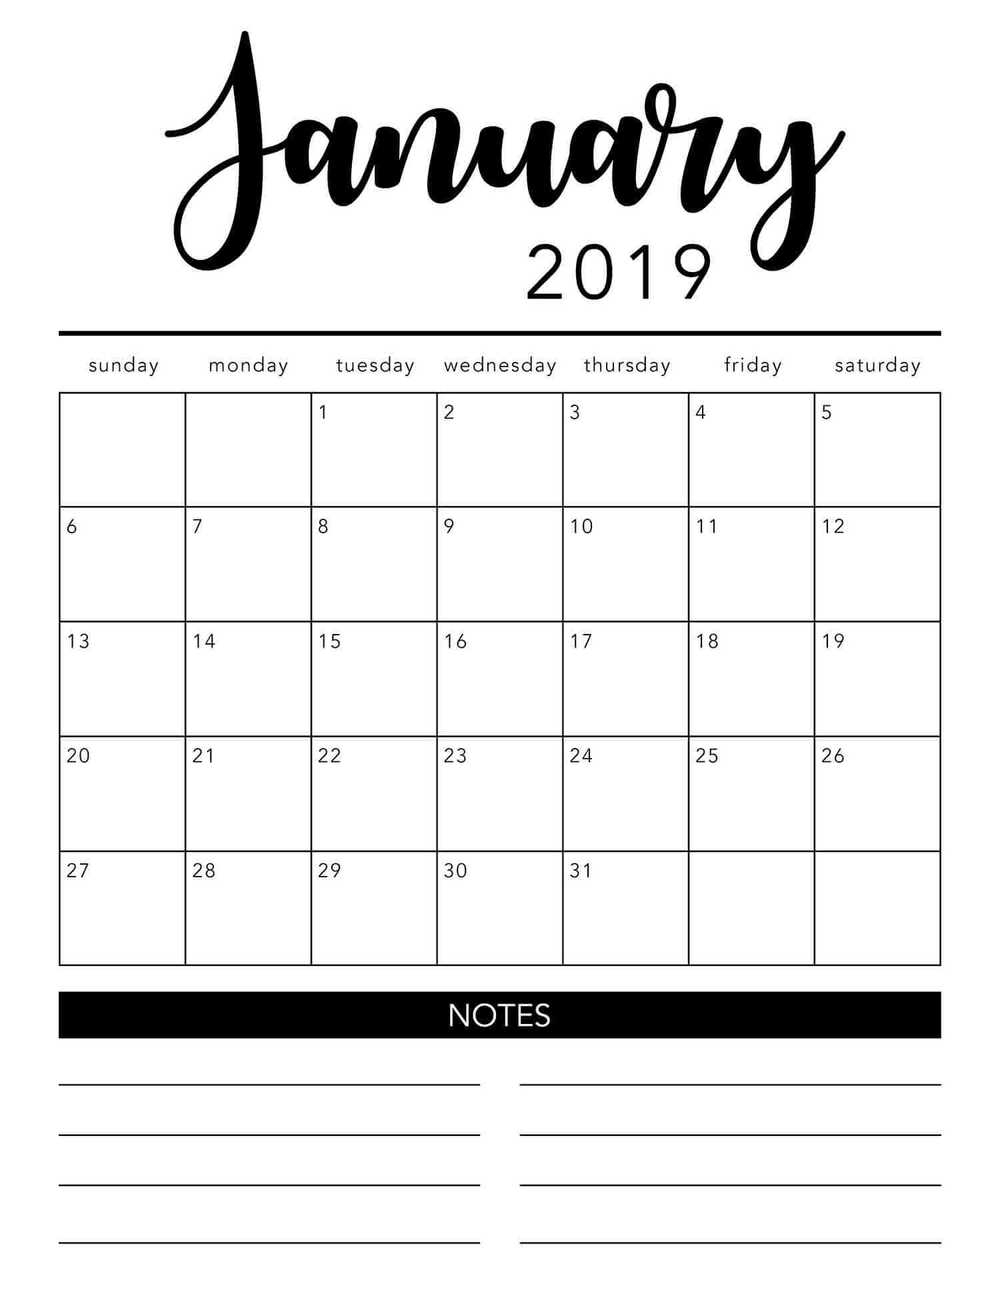 Free 2019 Printable Calendar Template (2 Colors!) - I Heart Naptime within Free Calendar Templates Printable